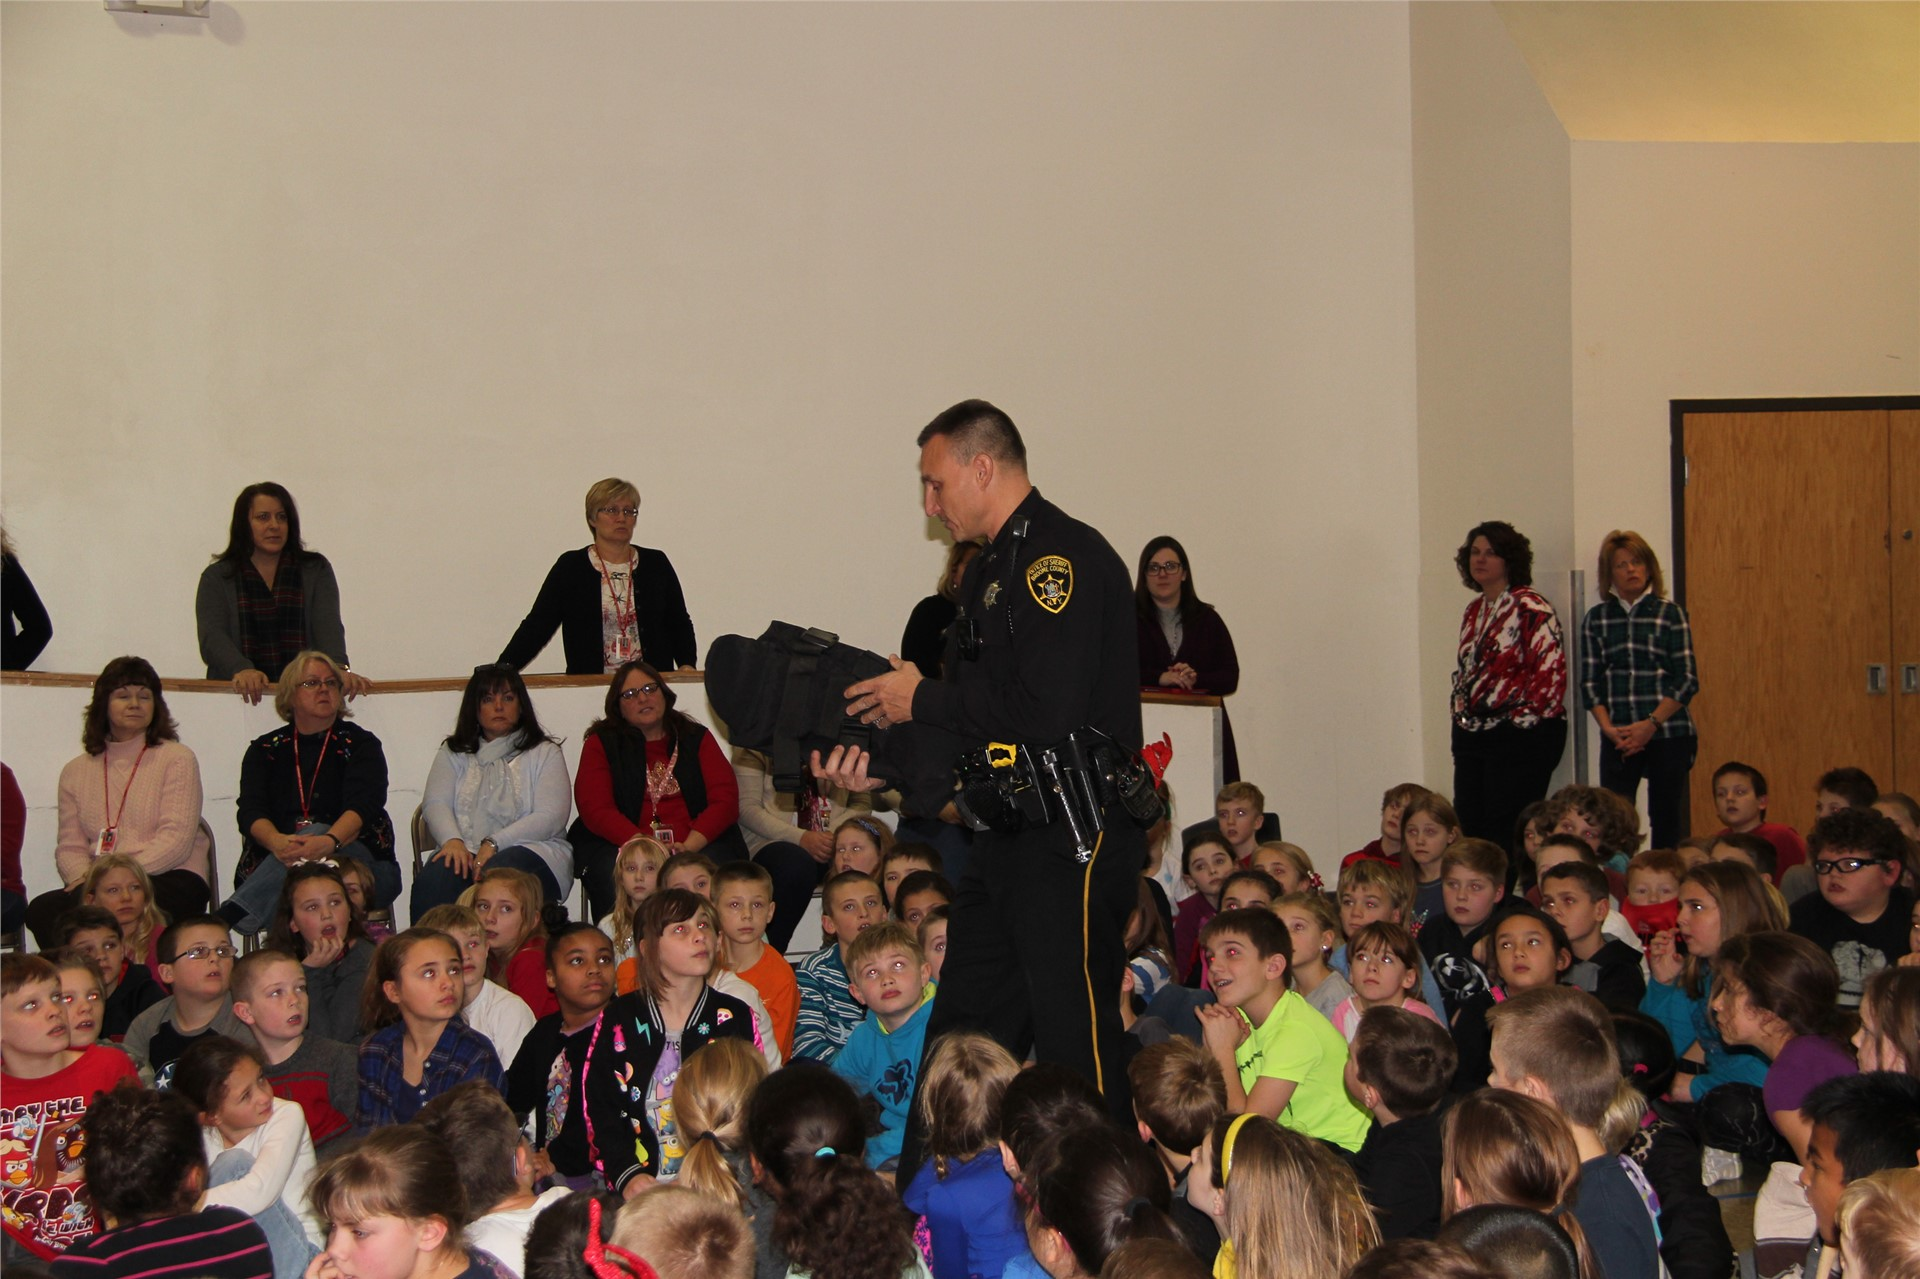 Officer showing students equipment